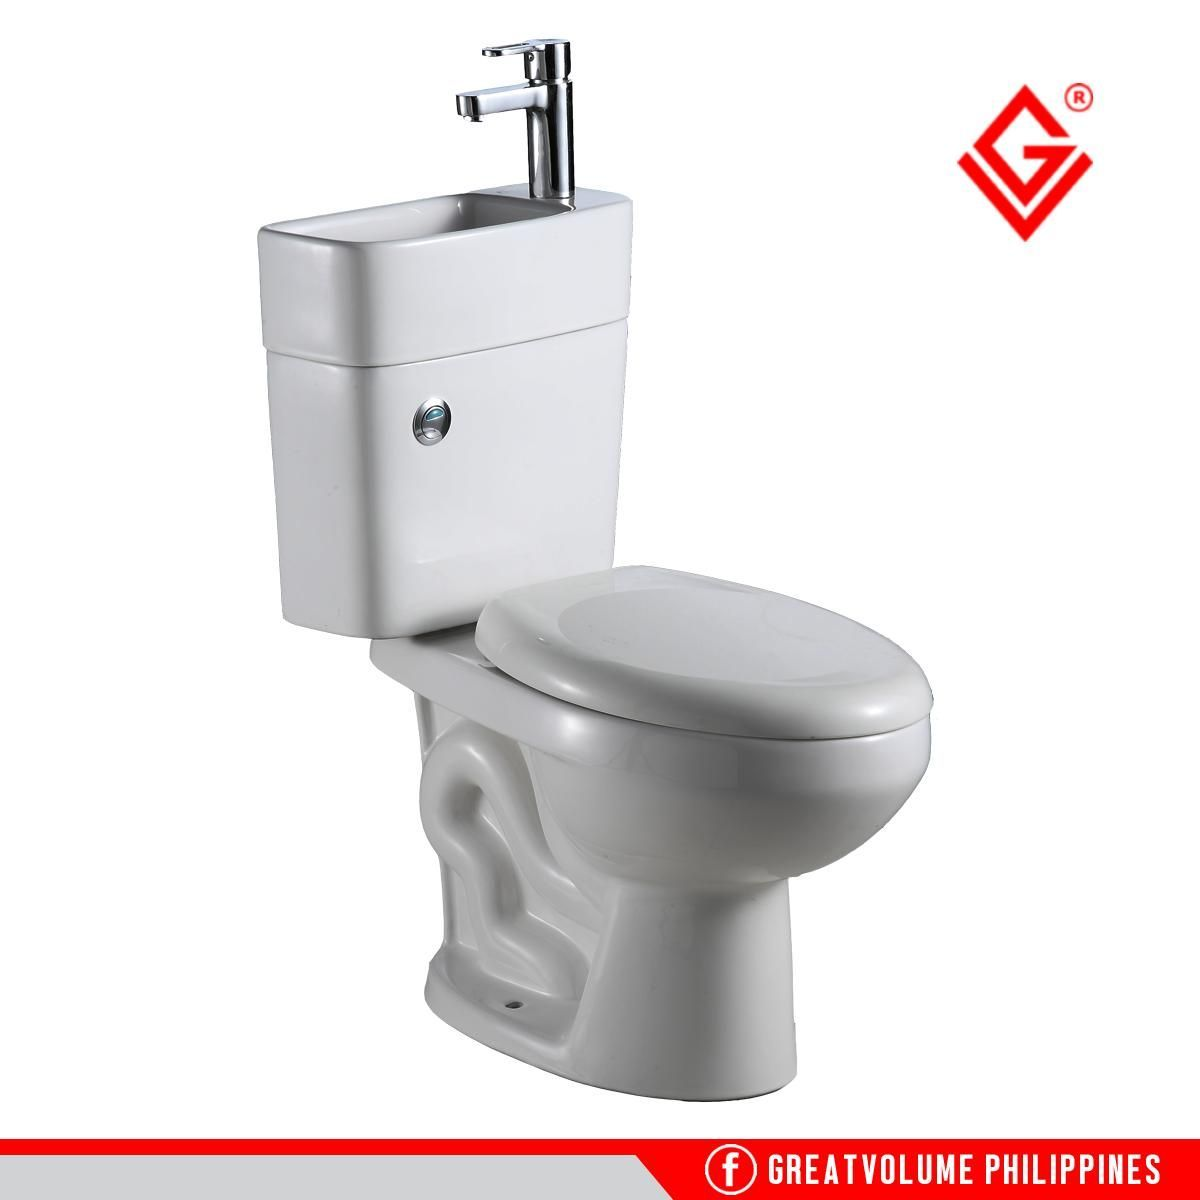 Buy Gv 6881 2in1 Dual Flush Water Closet Toilet Bowl With Basin Limited Offer Water Closet Heater Bidet Shower Hos Shower Hose Kitchen Sink Faucets Toilet Bowl